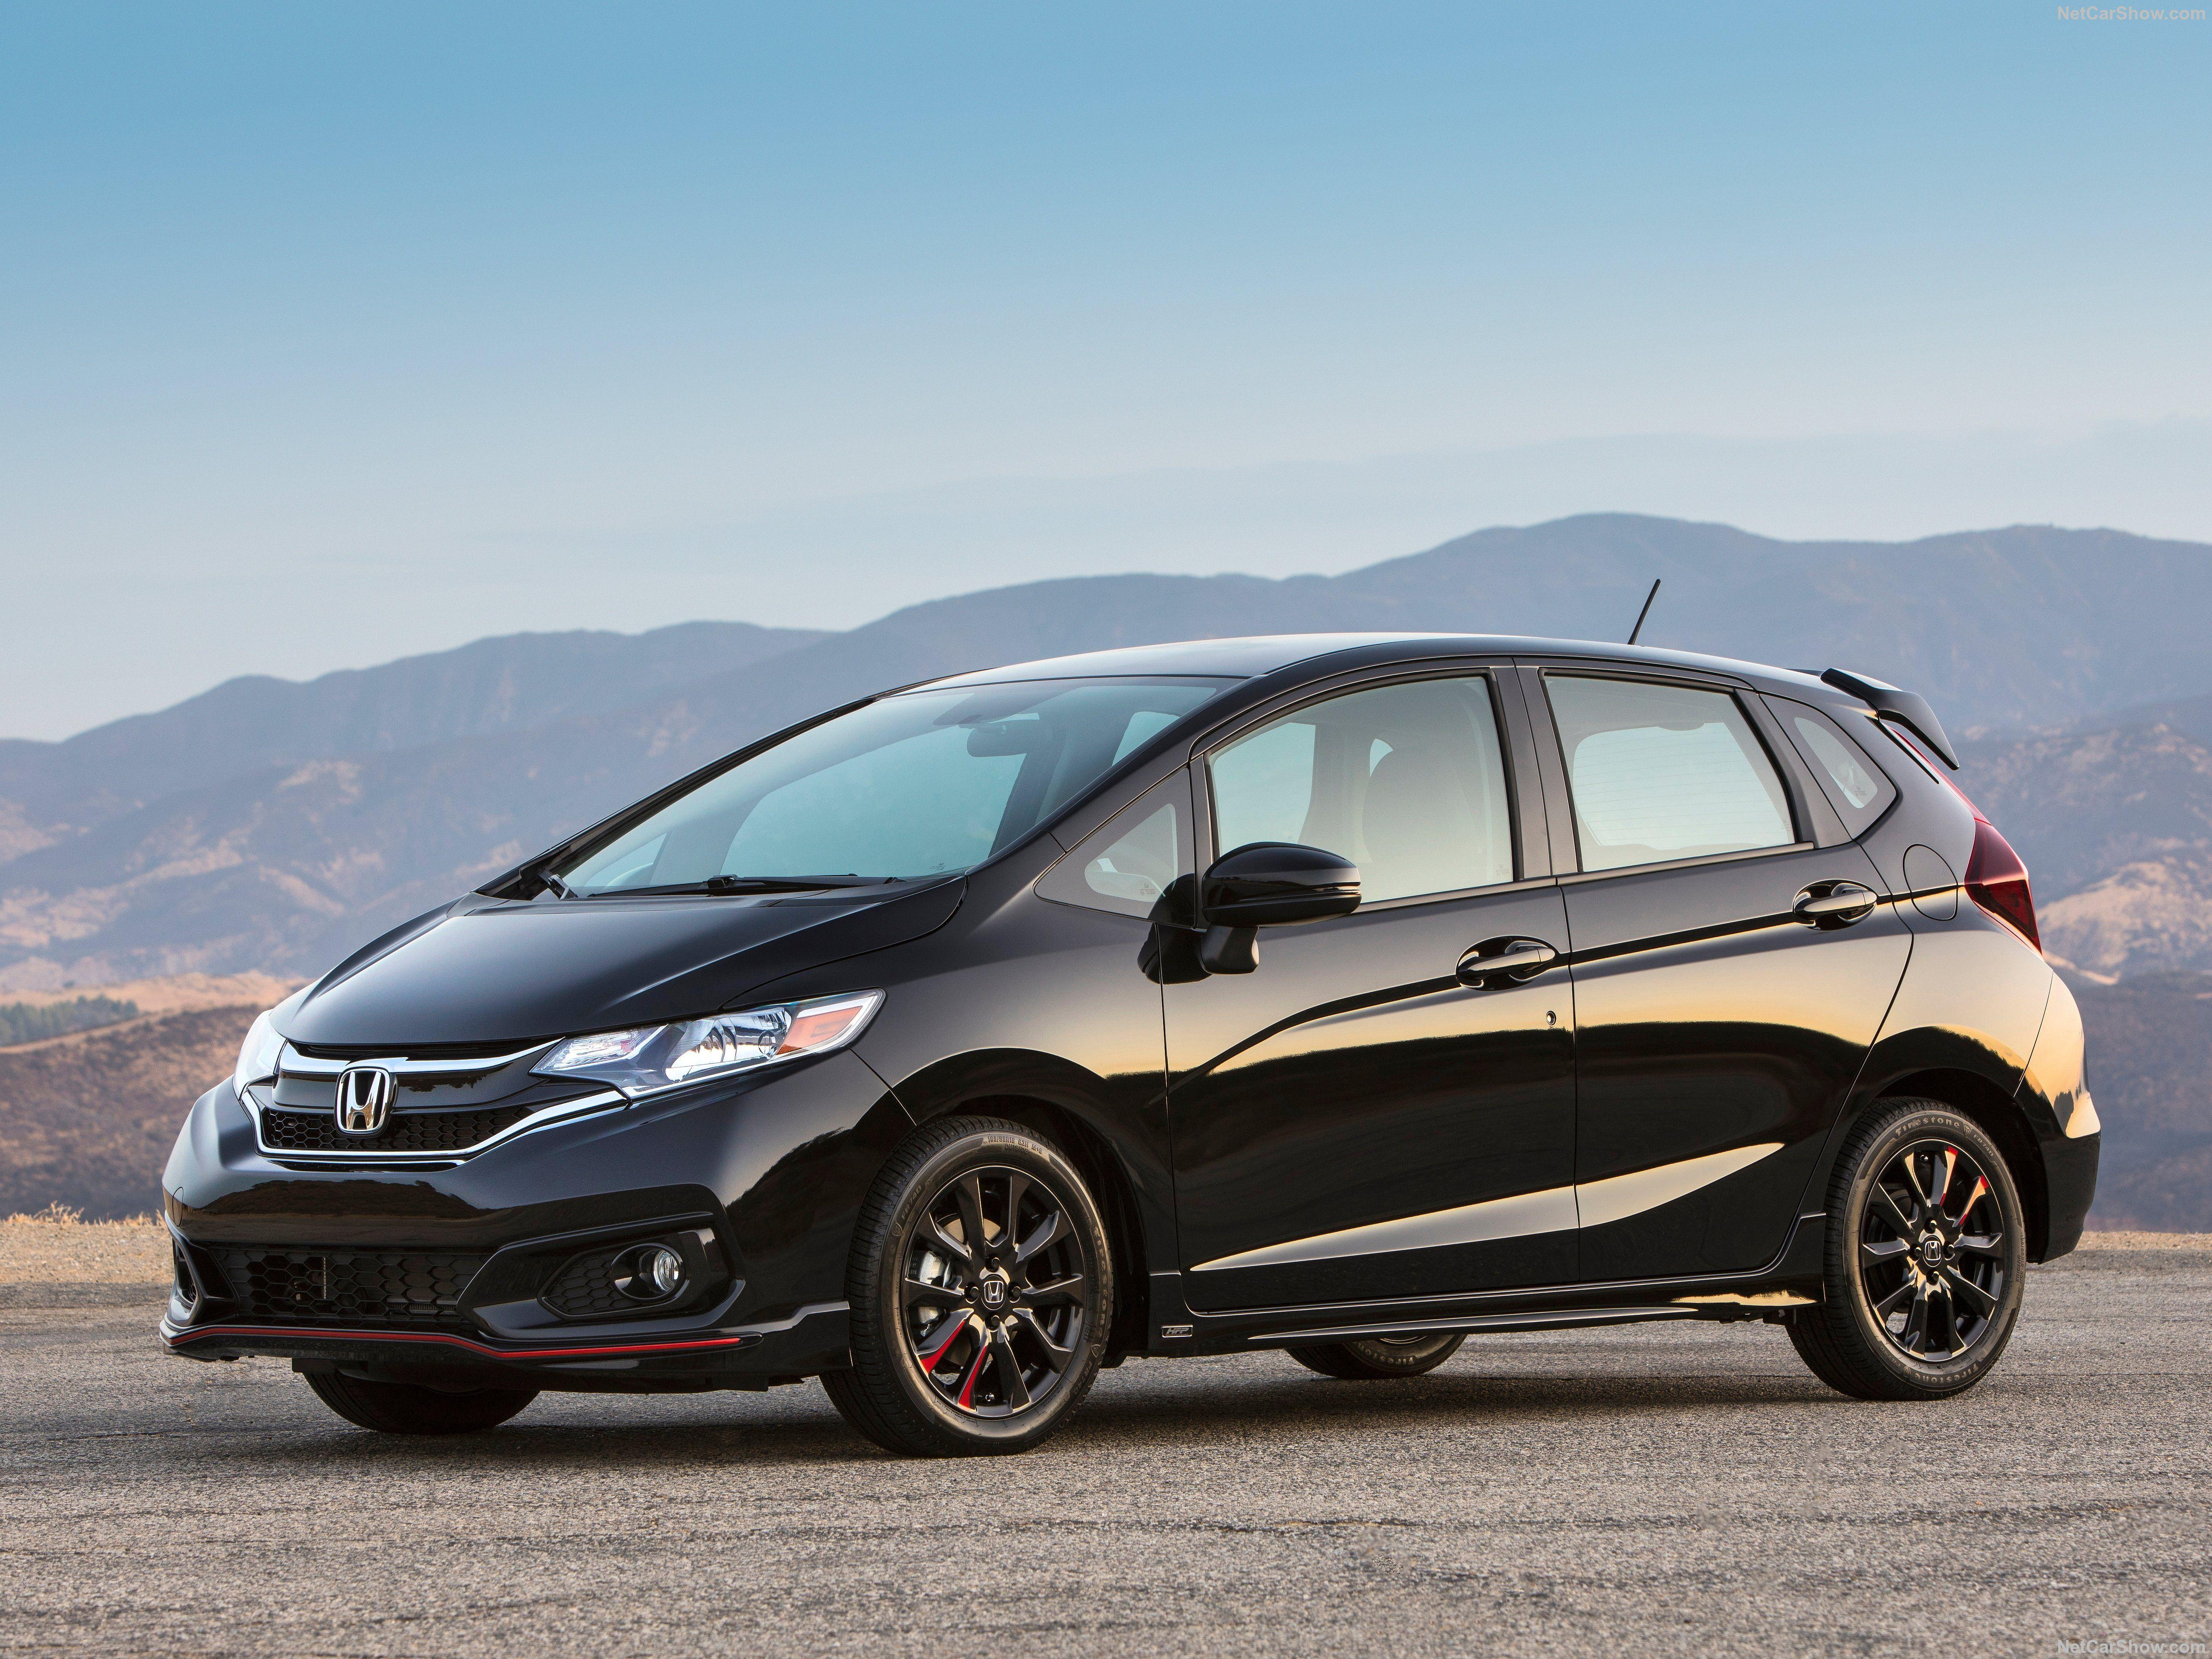 Honda Fit (2018) - pictures, information & specs